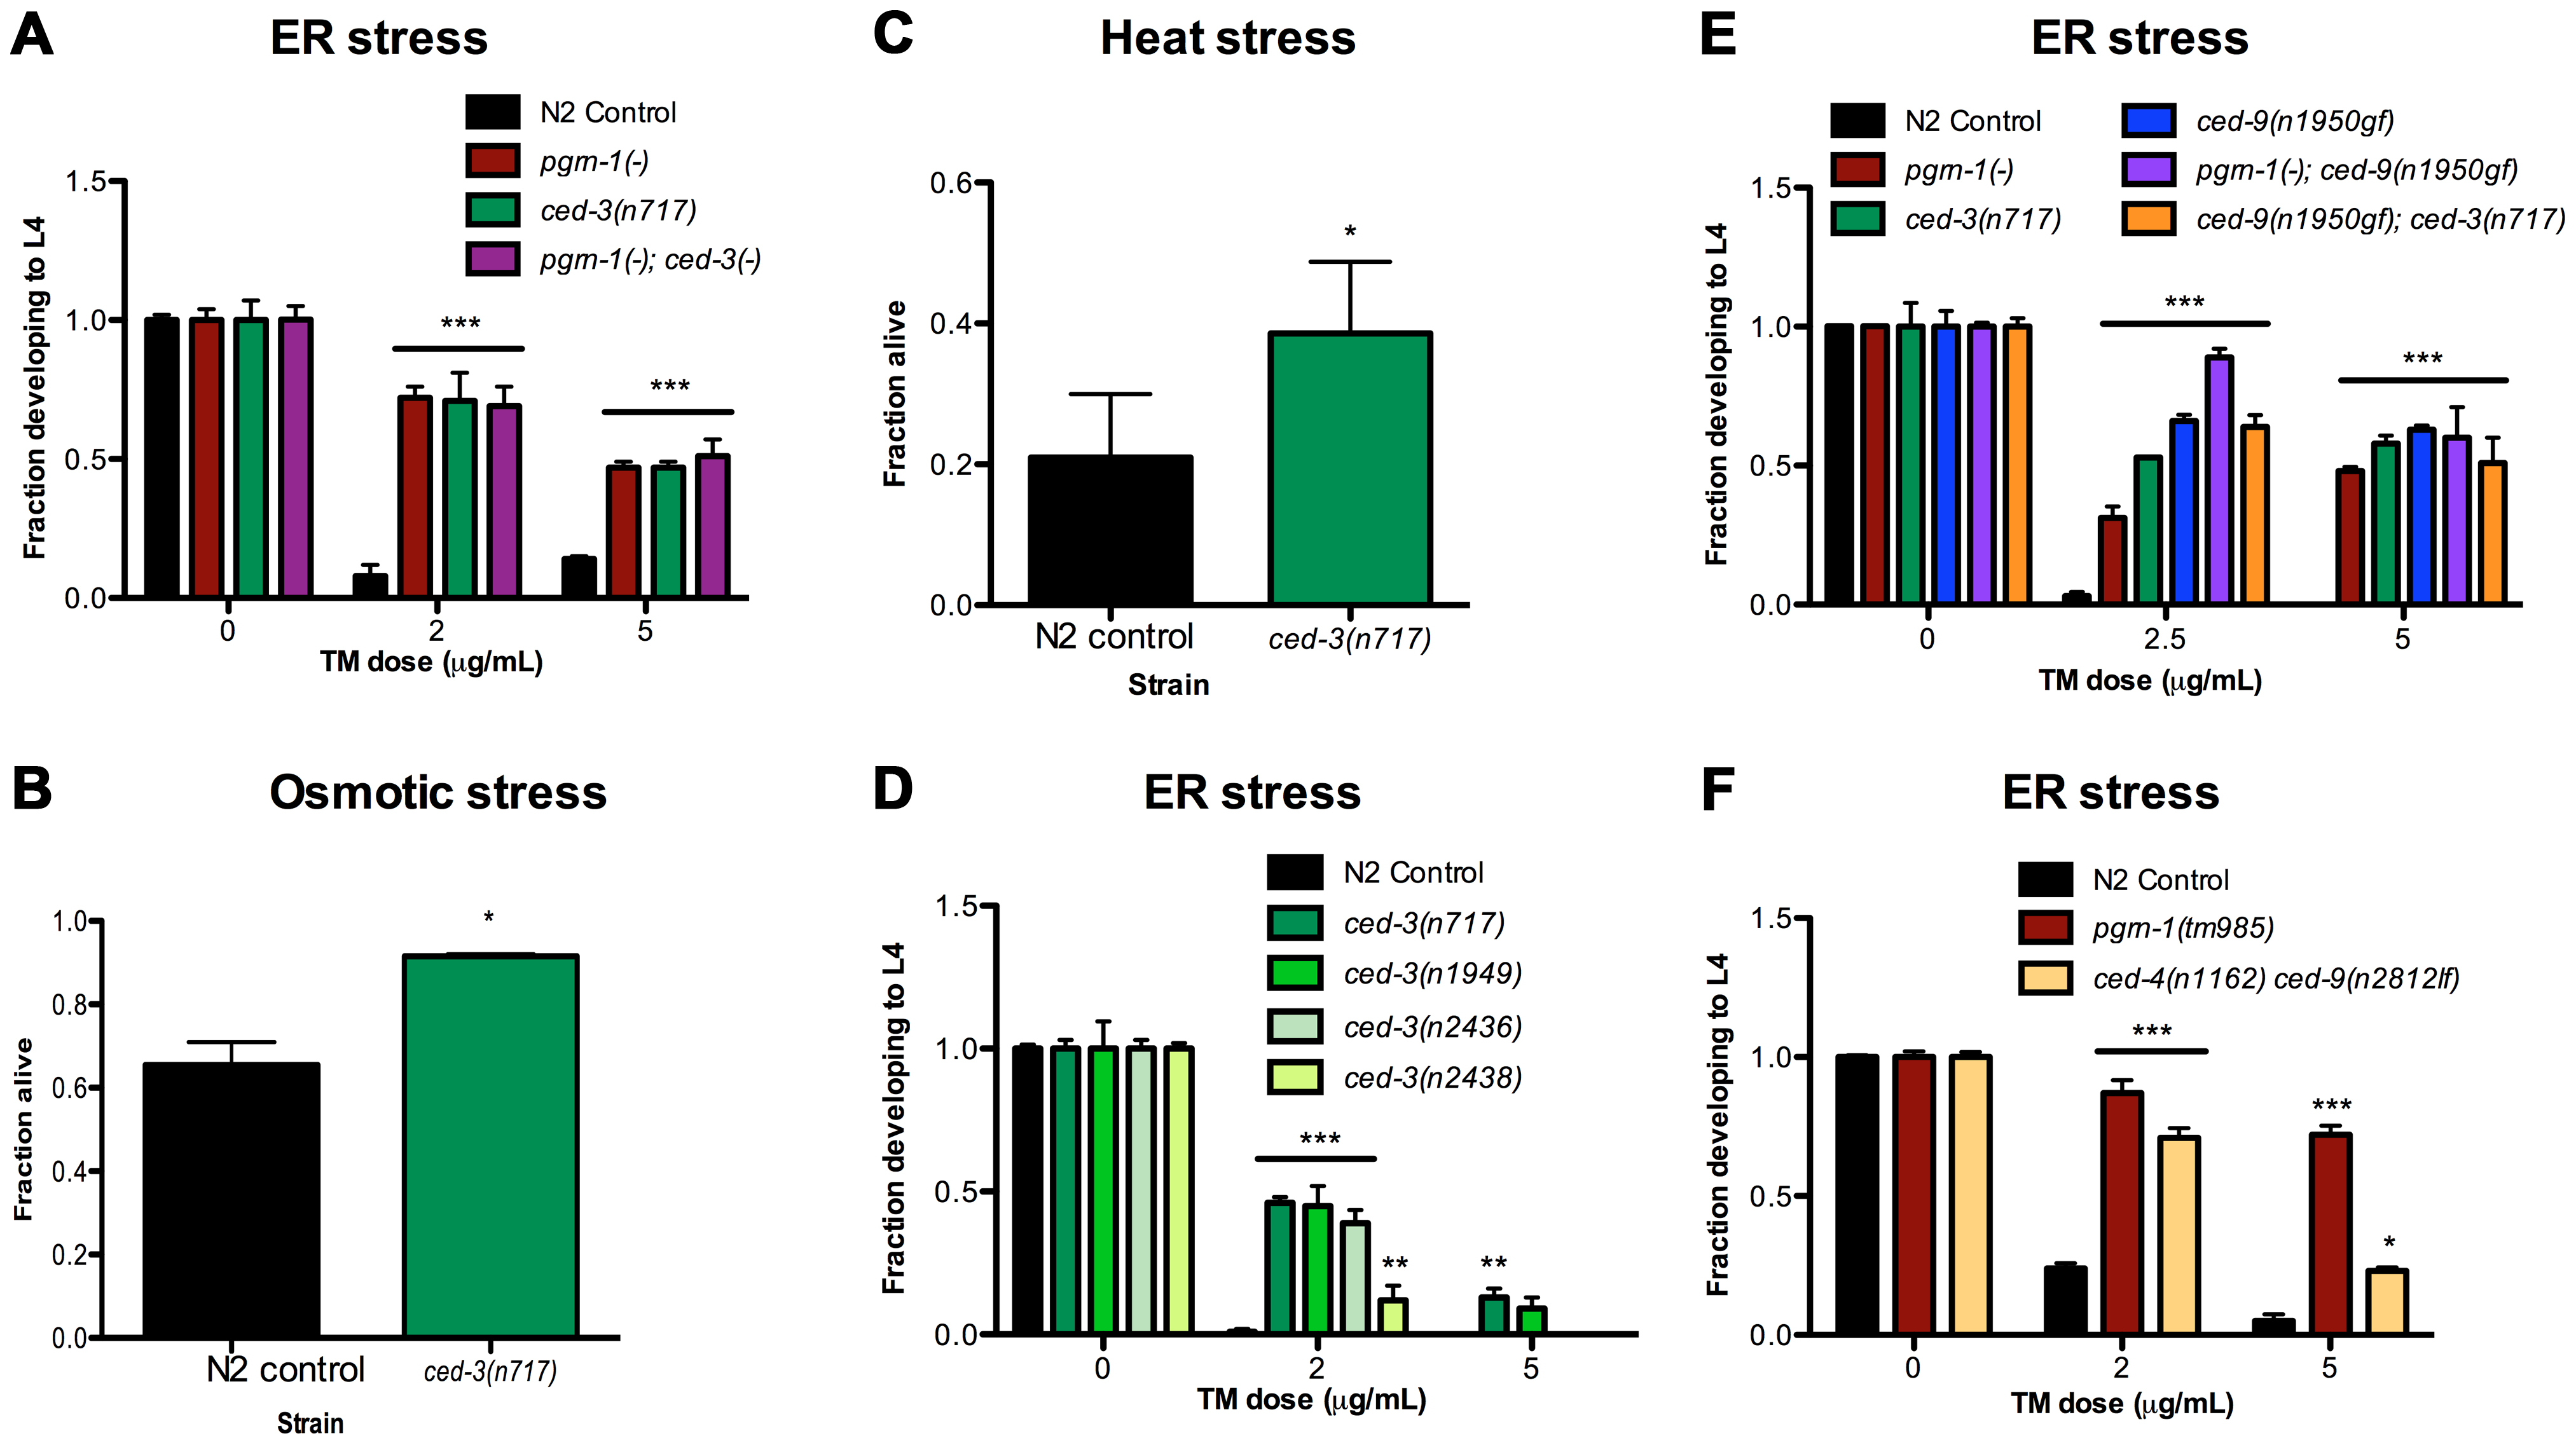 Mutations in programmed cell death genes <i>ced-3</i> and <i>ced-9</i> confer stress resistance.